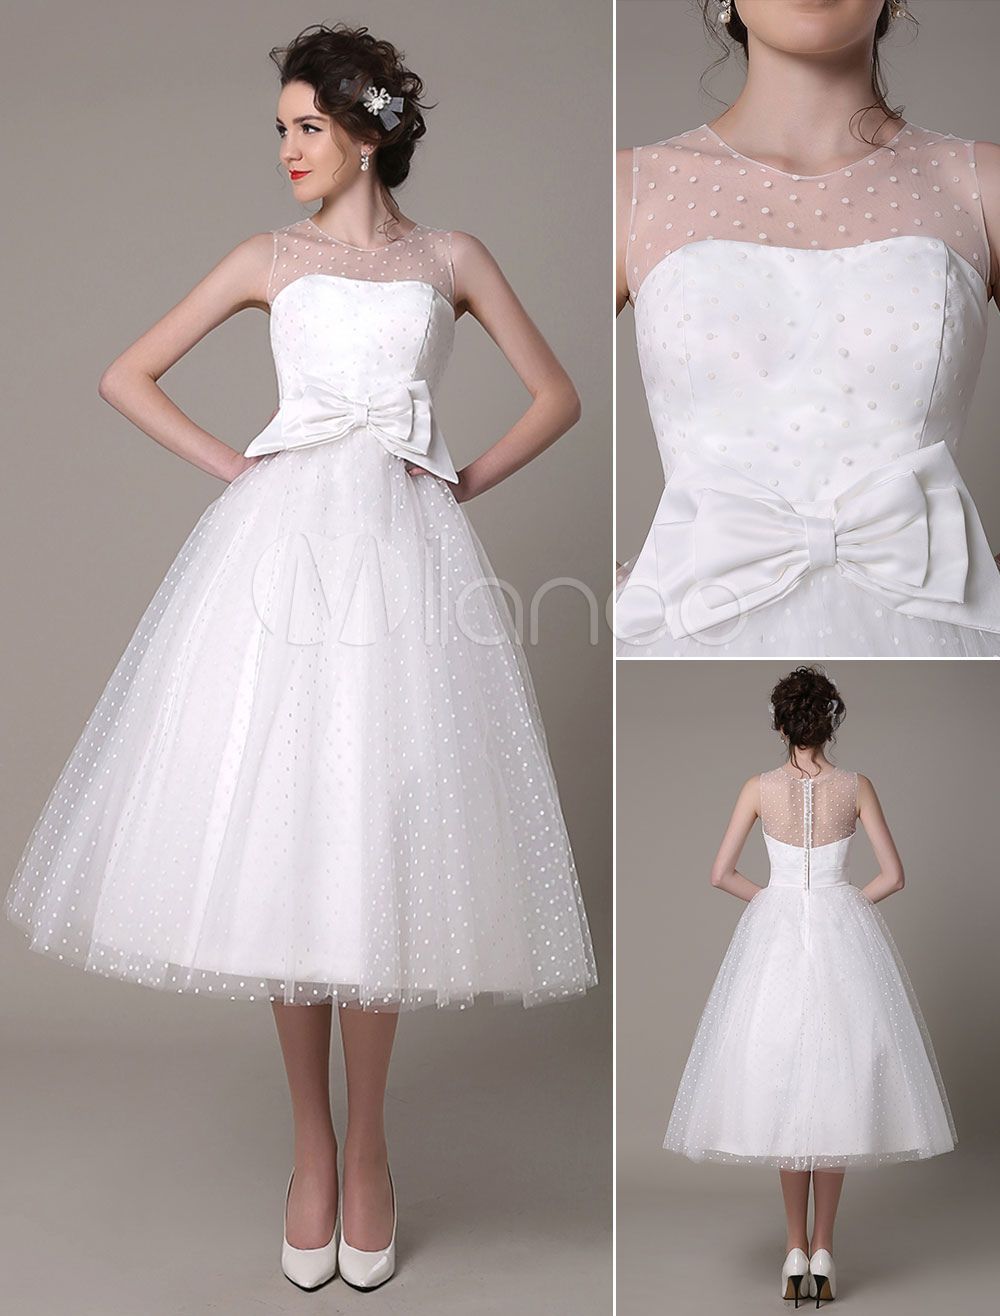 Tulle Wedding Dress Strapless A-Line Tea Length Bridal Dress With ...